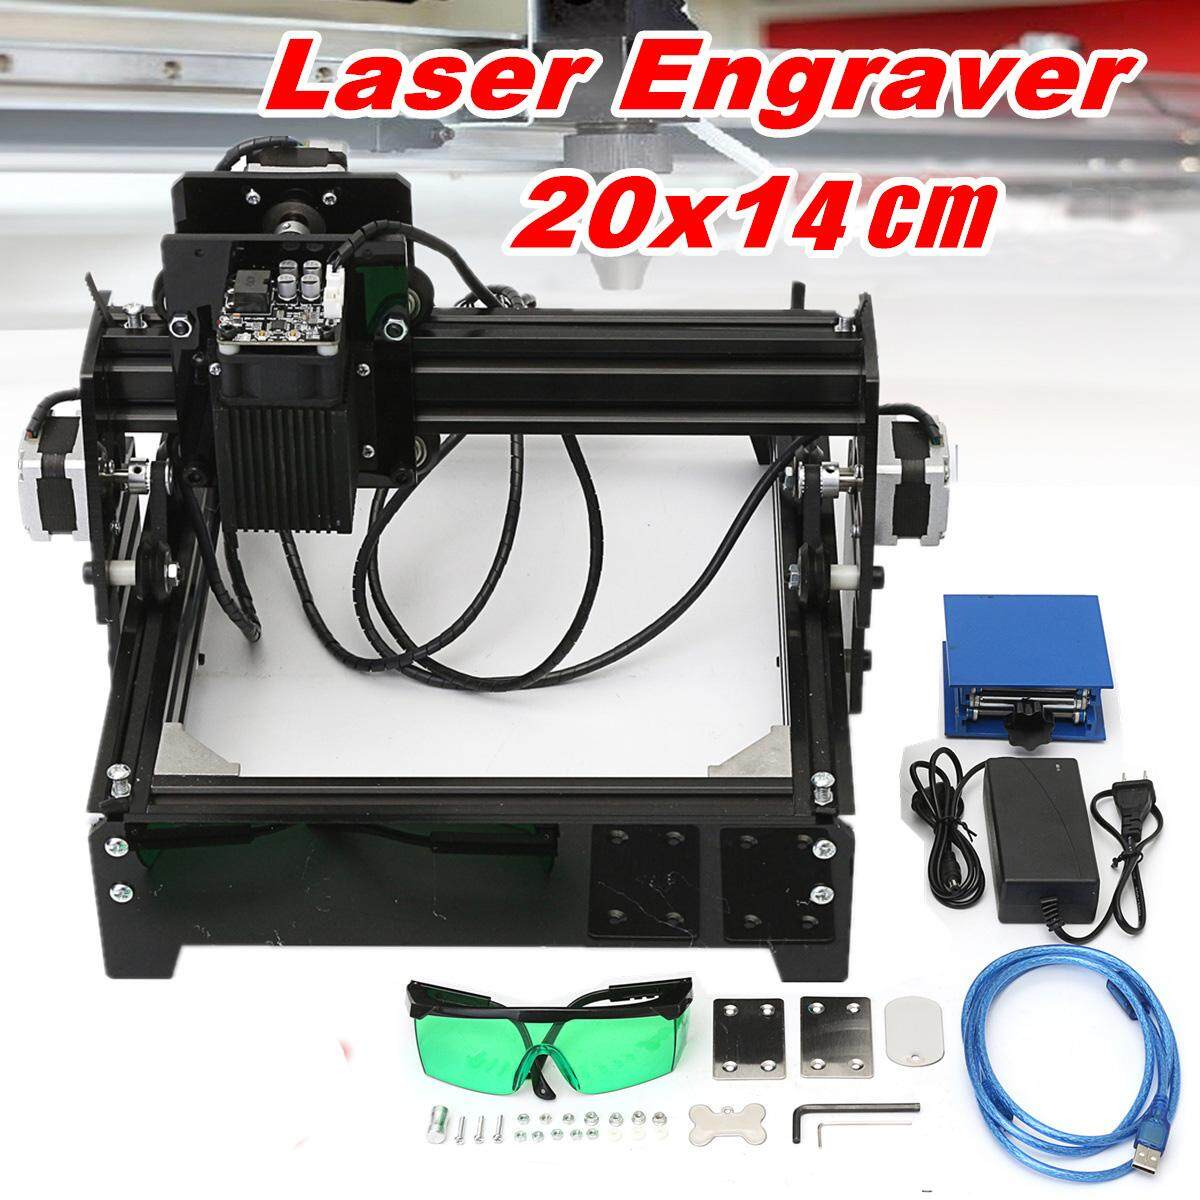 15W 20x14cm Laser Engraver USB Desktop CNC DIY Marking Machine for Iron Metal et